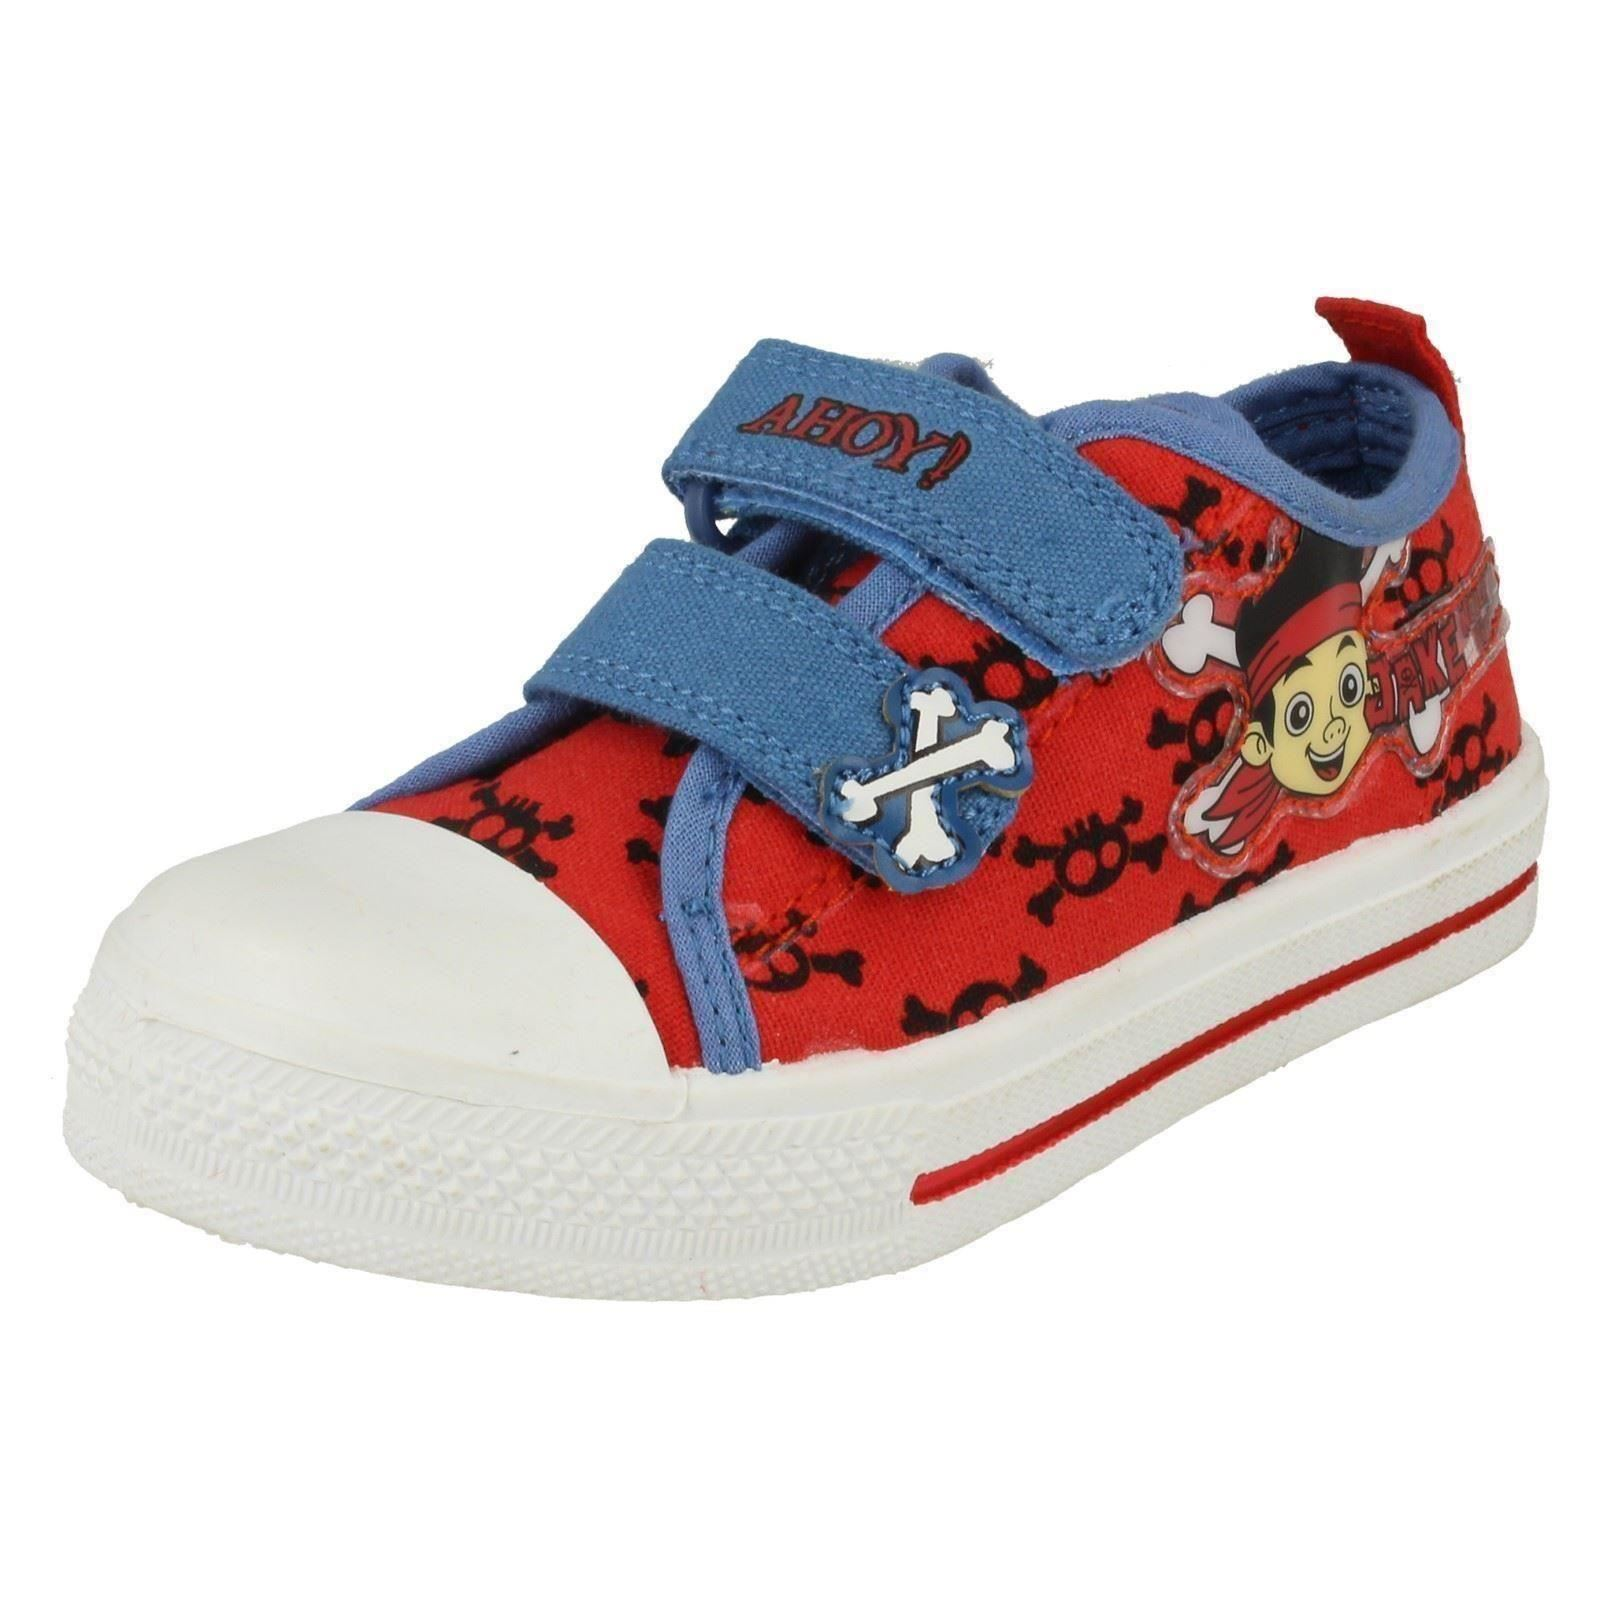 Chicos Disneys Zapatos De Lona Etiqueta Jake Crossbone Lona